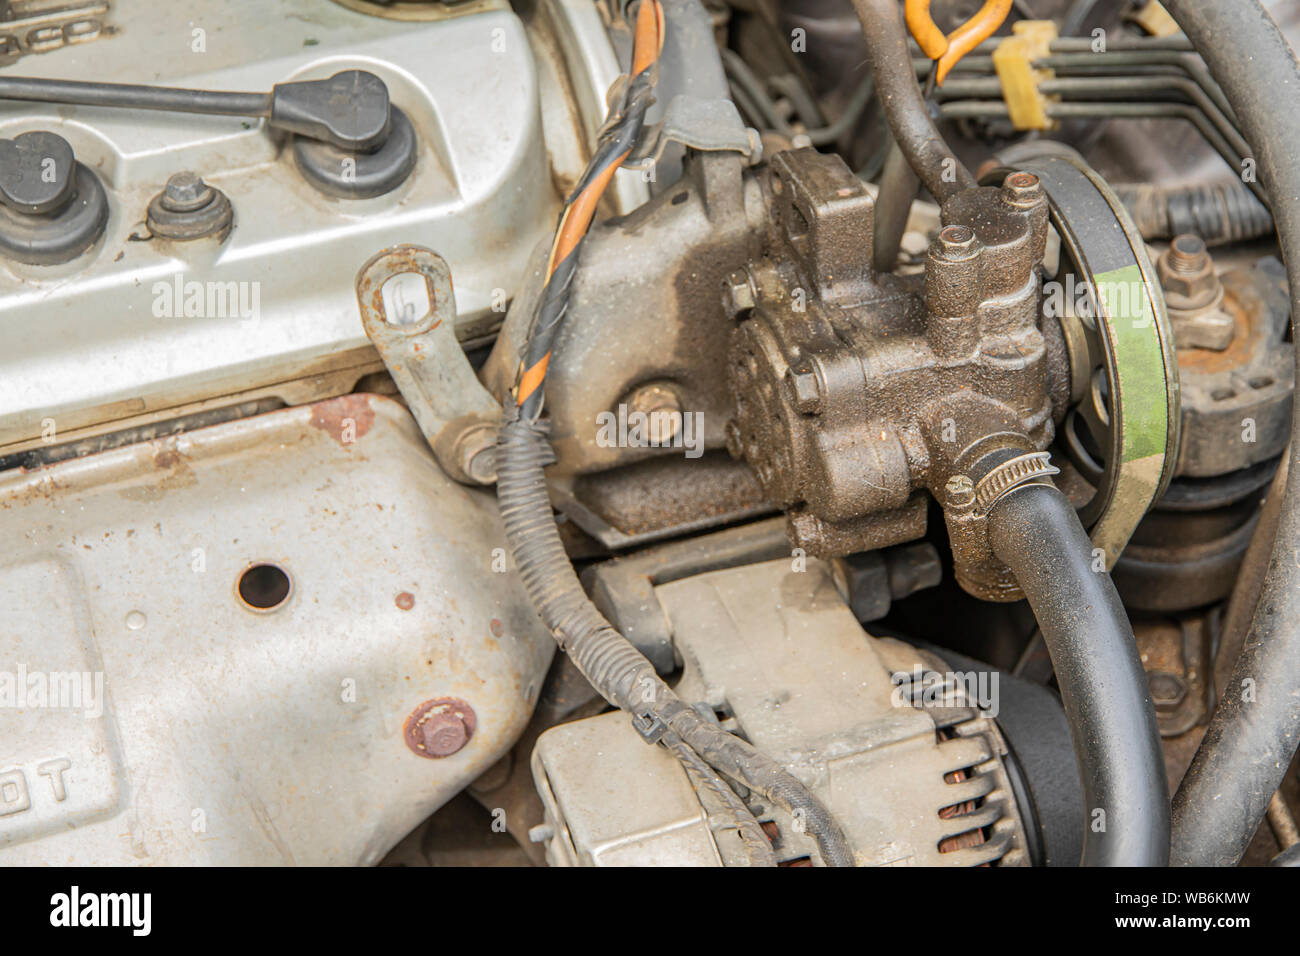 Power Steering Stock Photos & Power Steering Stock Images